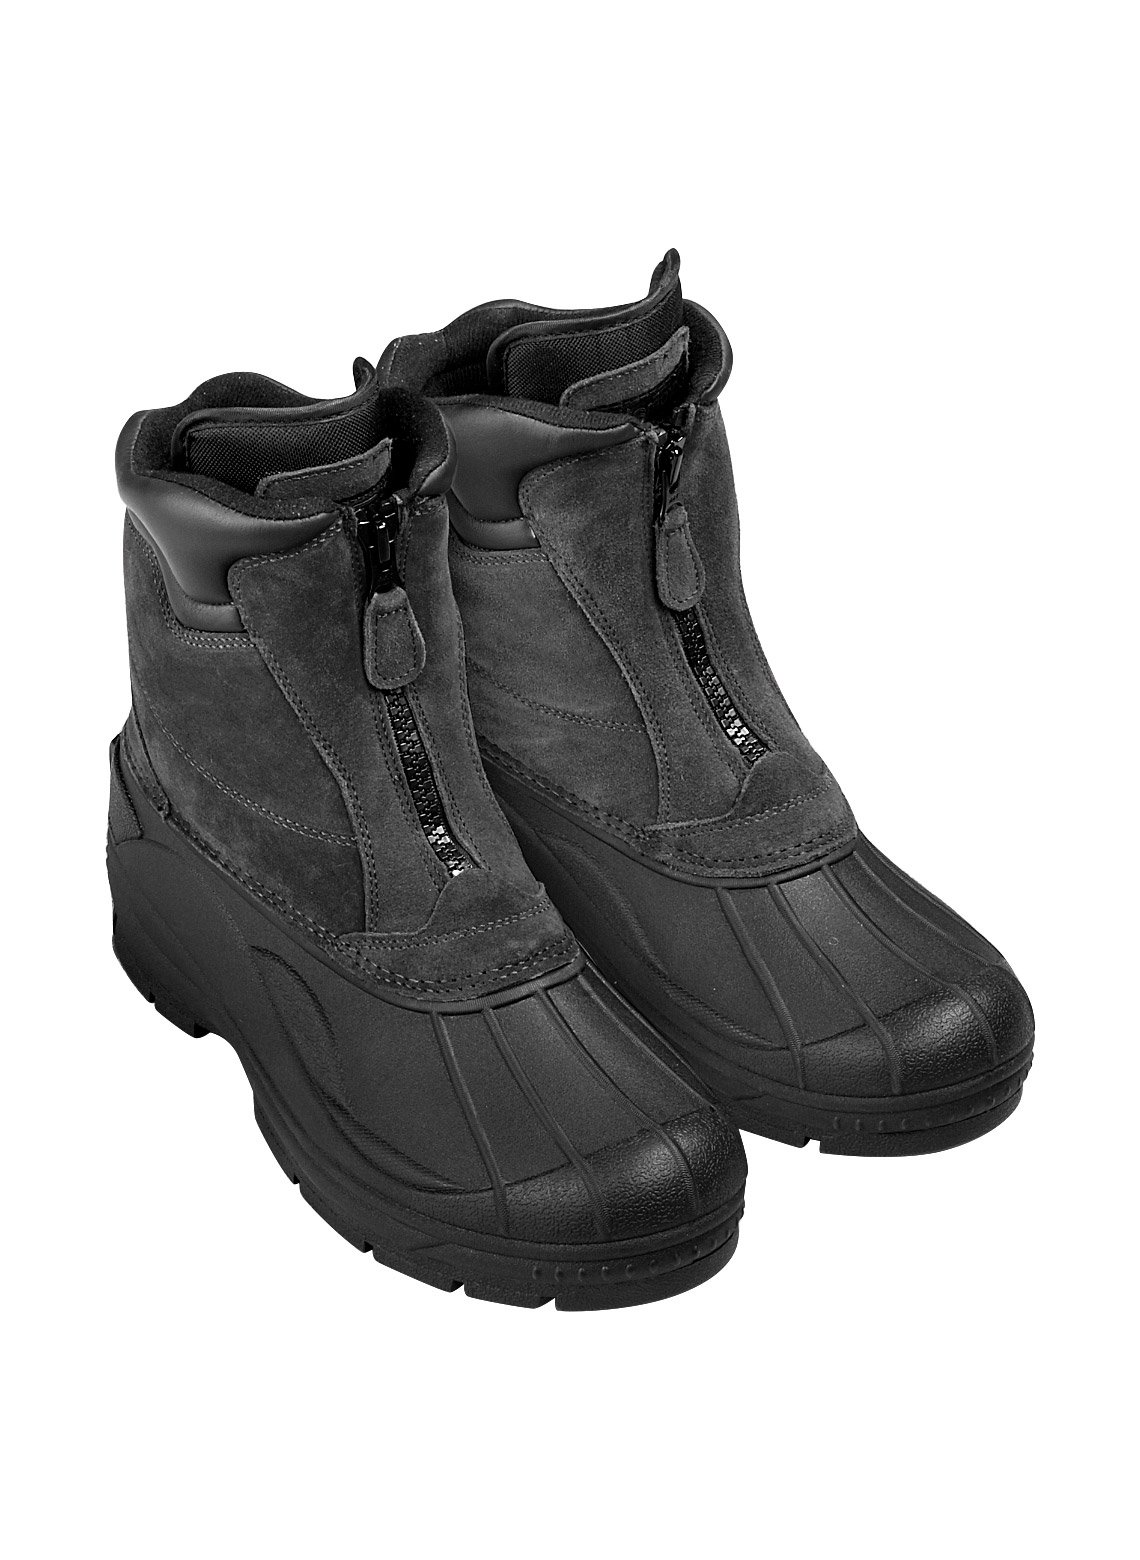 Totes Weather-Resistant Boot, Black, Size 10